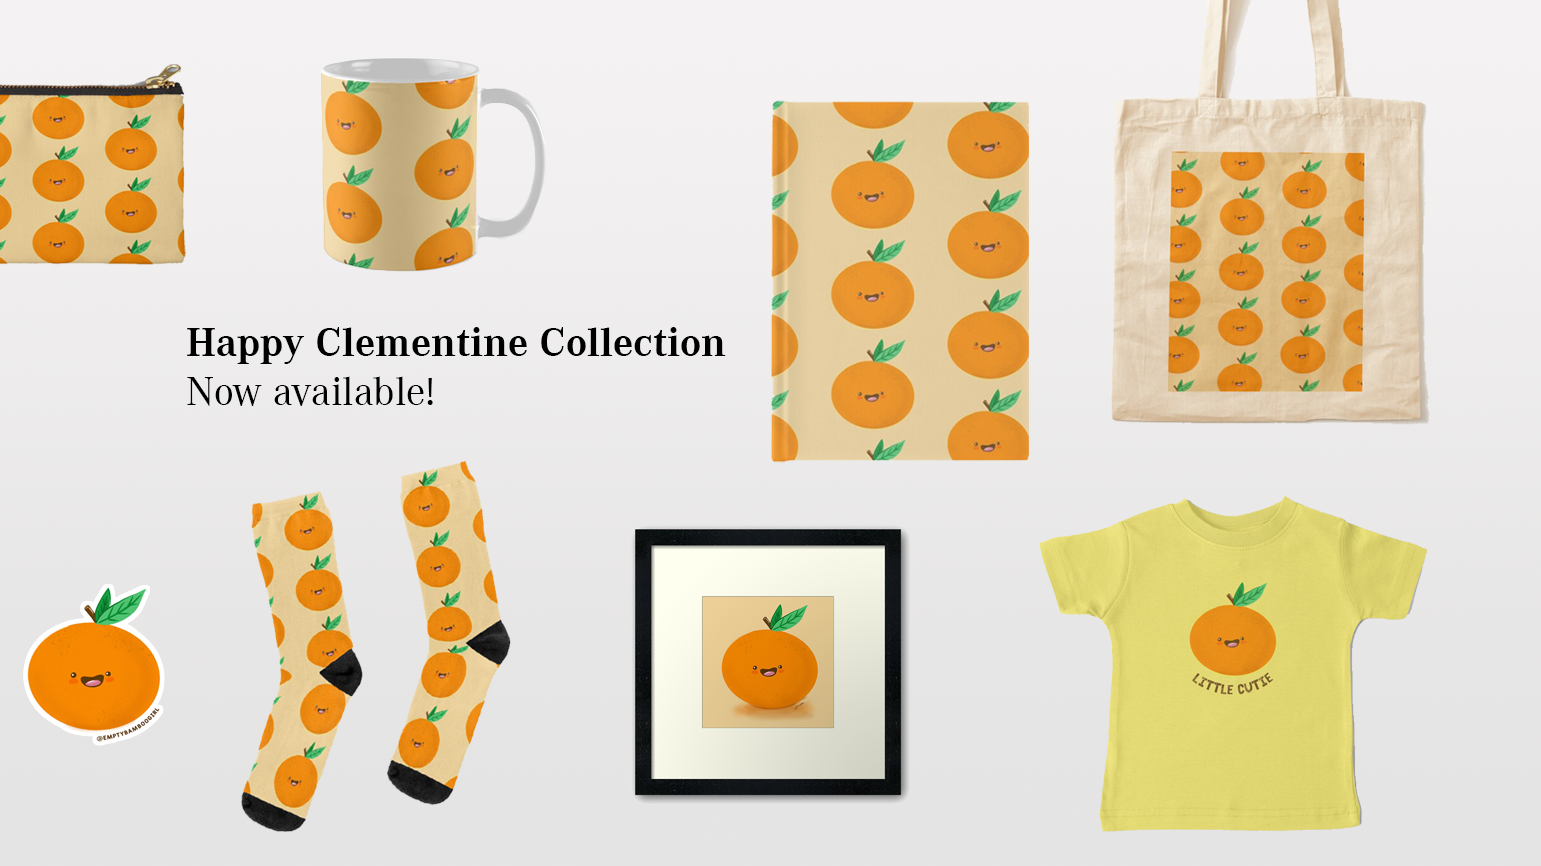 Happy Clementine Collection is Now Available